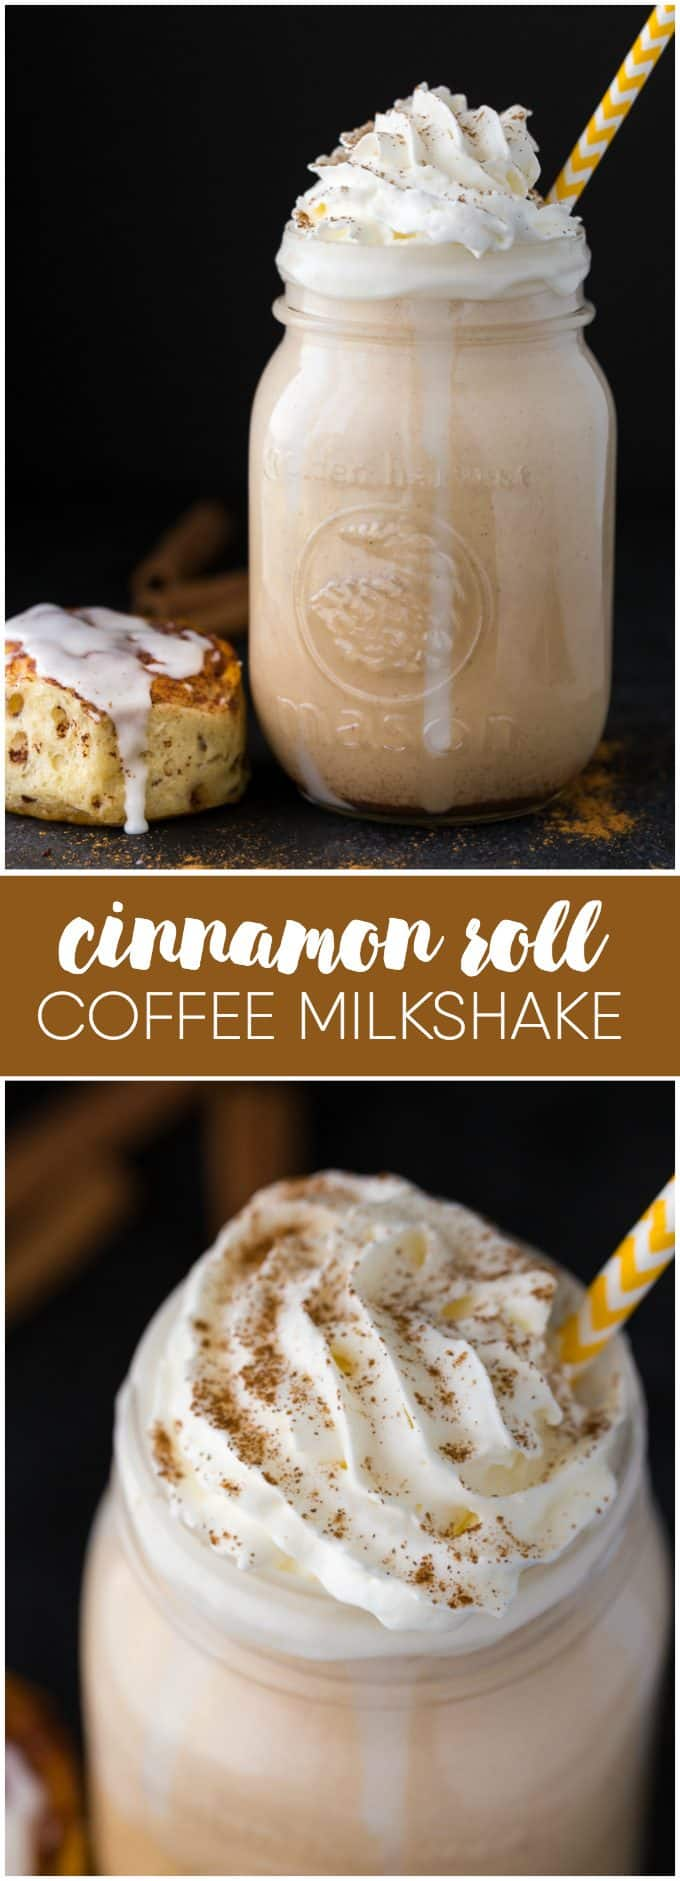 Cinnamon Roll Coffee Milkshake - Tastes just like a cinnamon roll! Super creamy, cold and delicious.